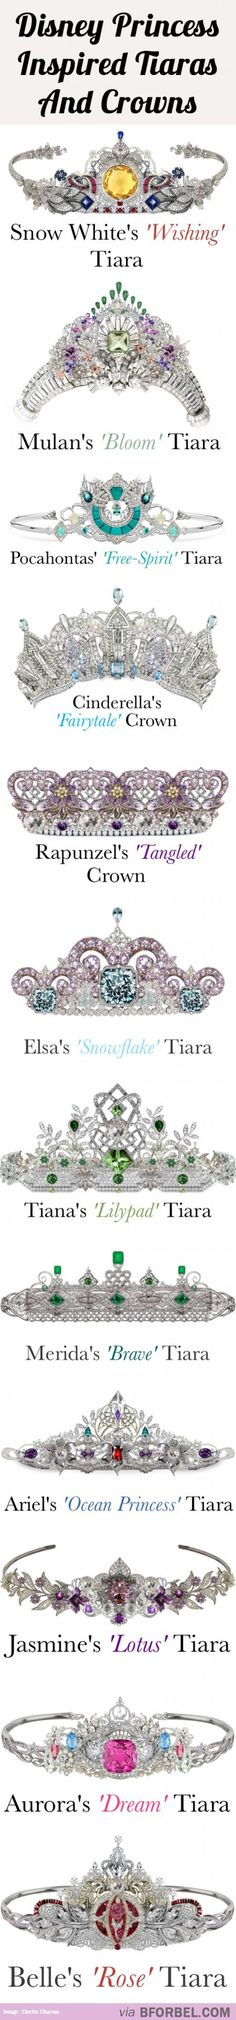 12 Disney Princess Tiaras And Crowns… oh it's a TIARA!!!! A TIARA!! I HAVE A TIARA!!!!! PUT IT ON ME PUT IT ON ME PUT IT ON ME......